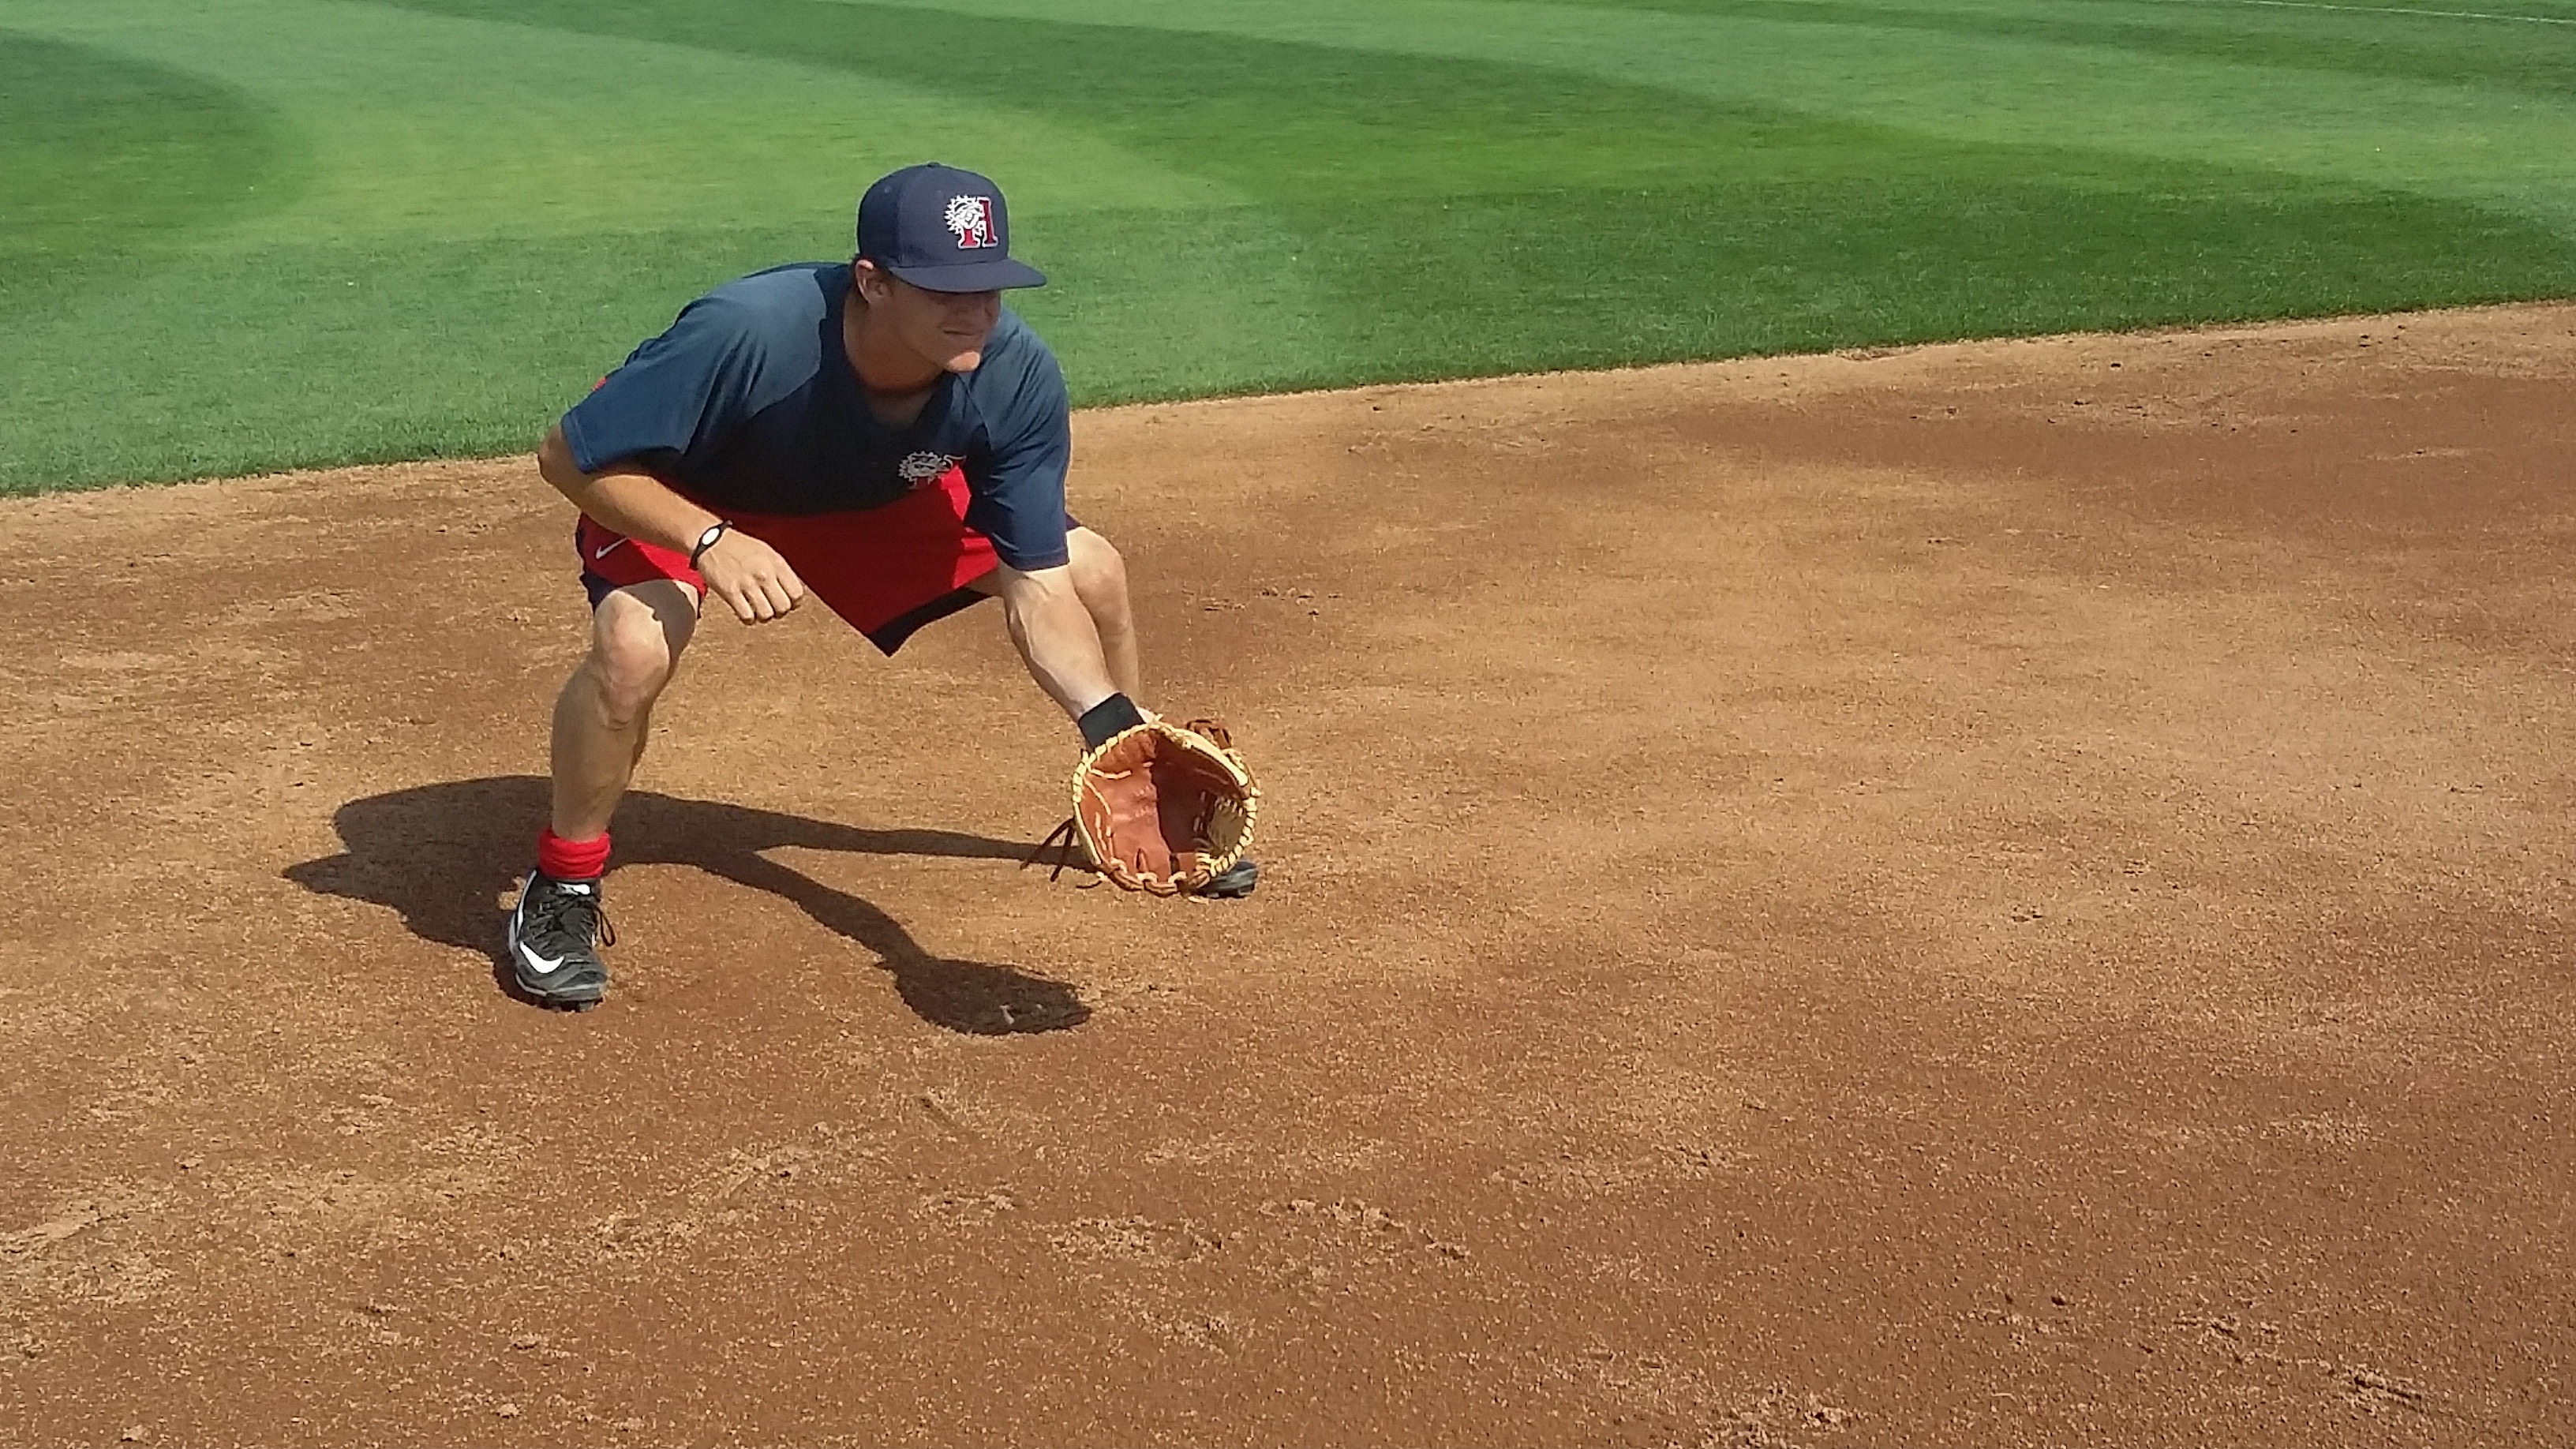 twohandspro-all-infield-positions.jpg